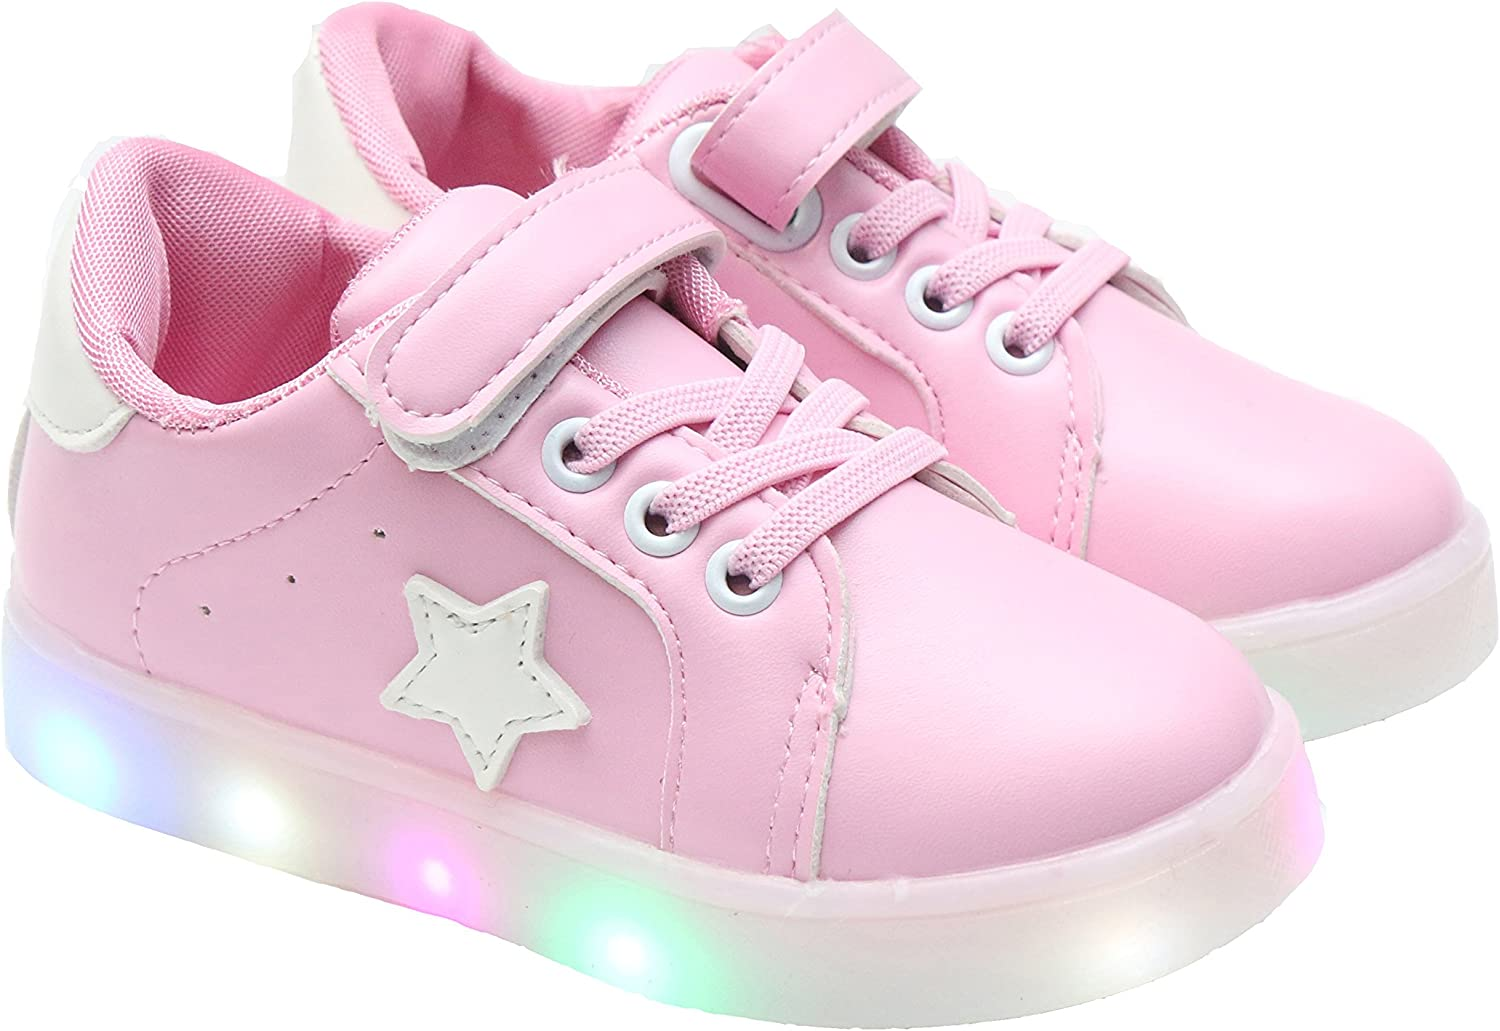 Baby Shoes Flashing Sneakers for Kids